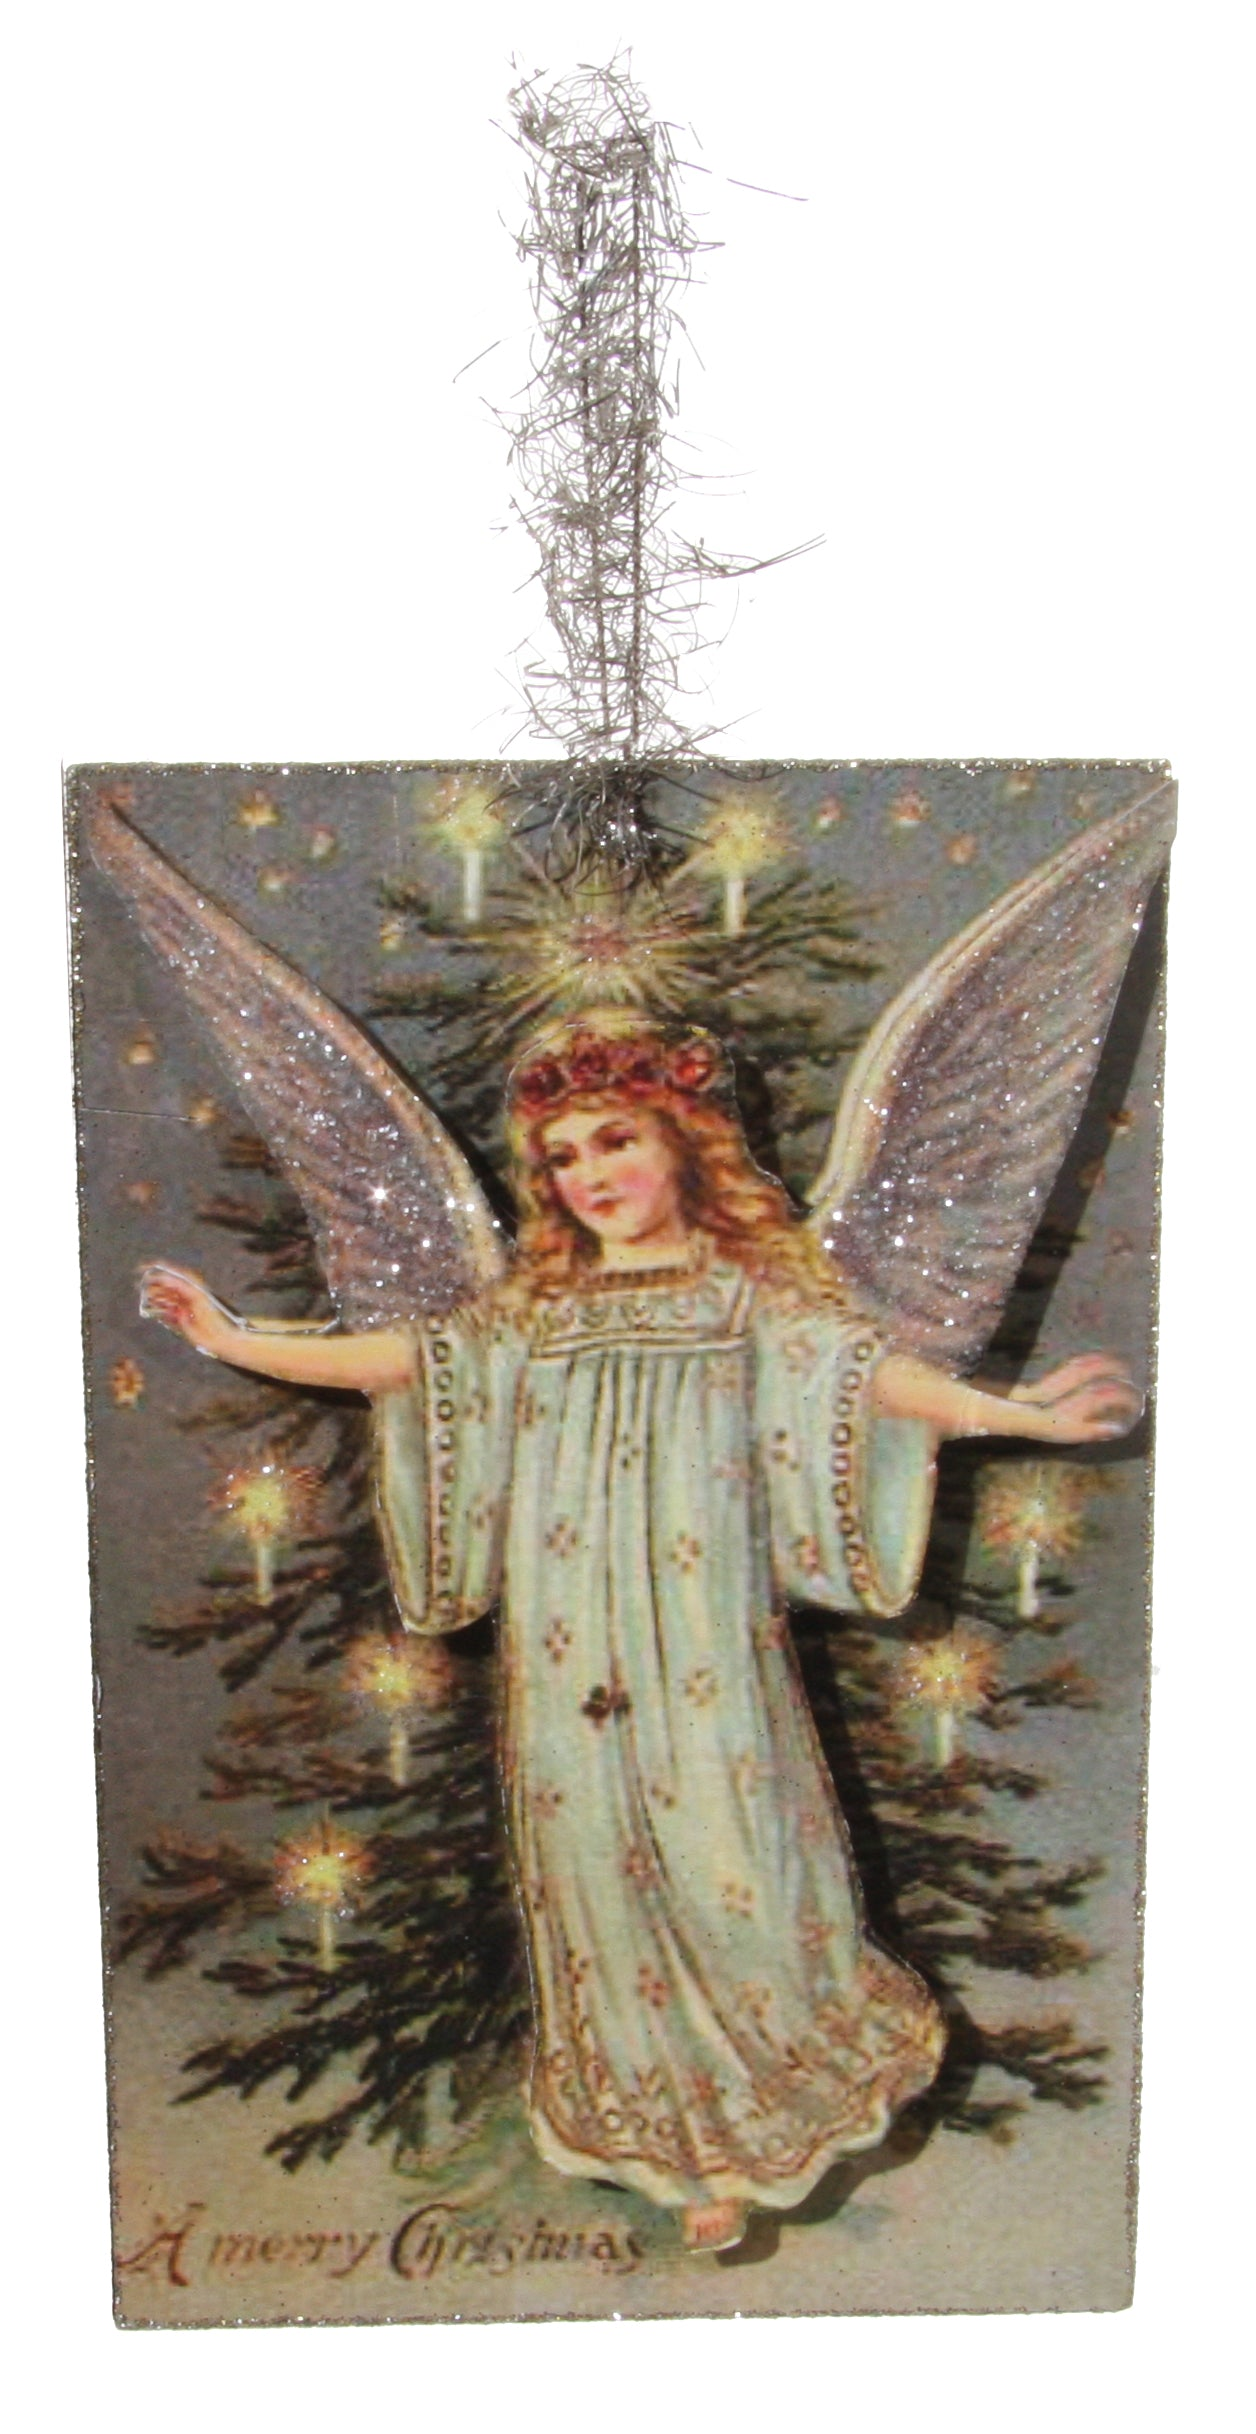 Vintage Christmas Angel Postcard Ornament | Vintage ...